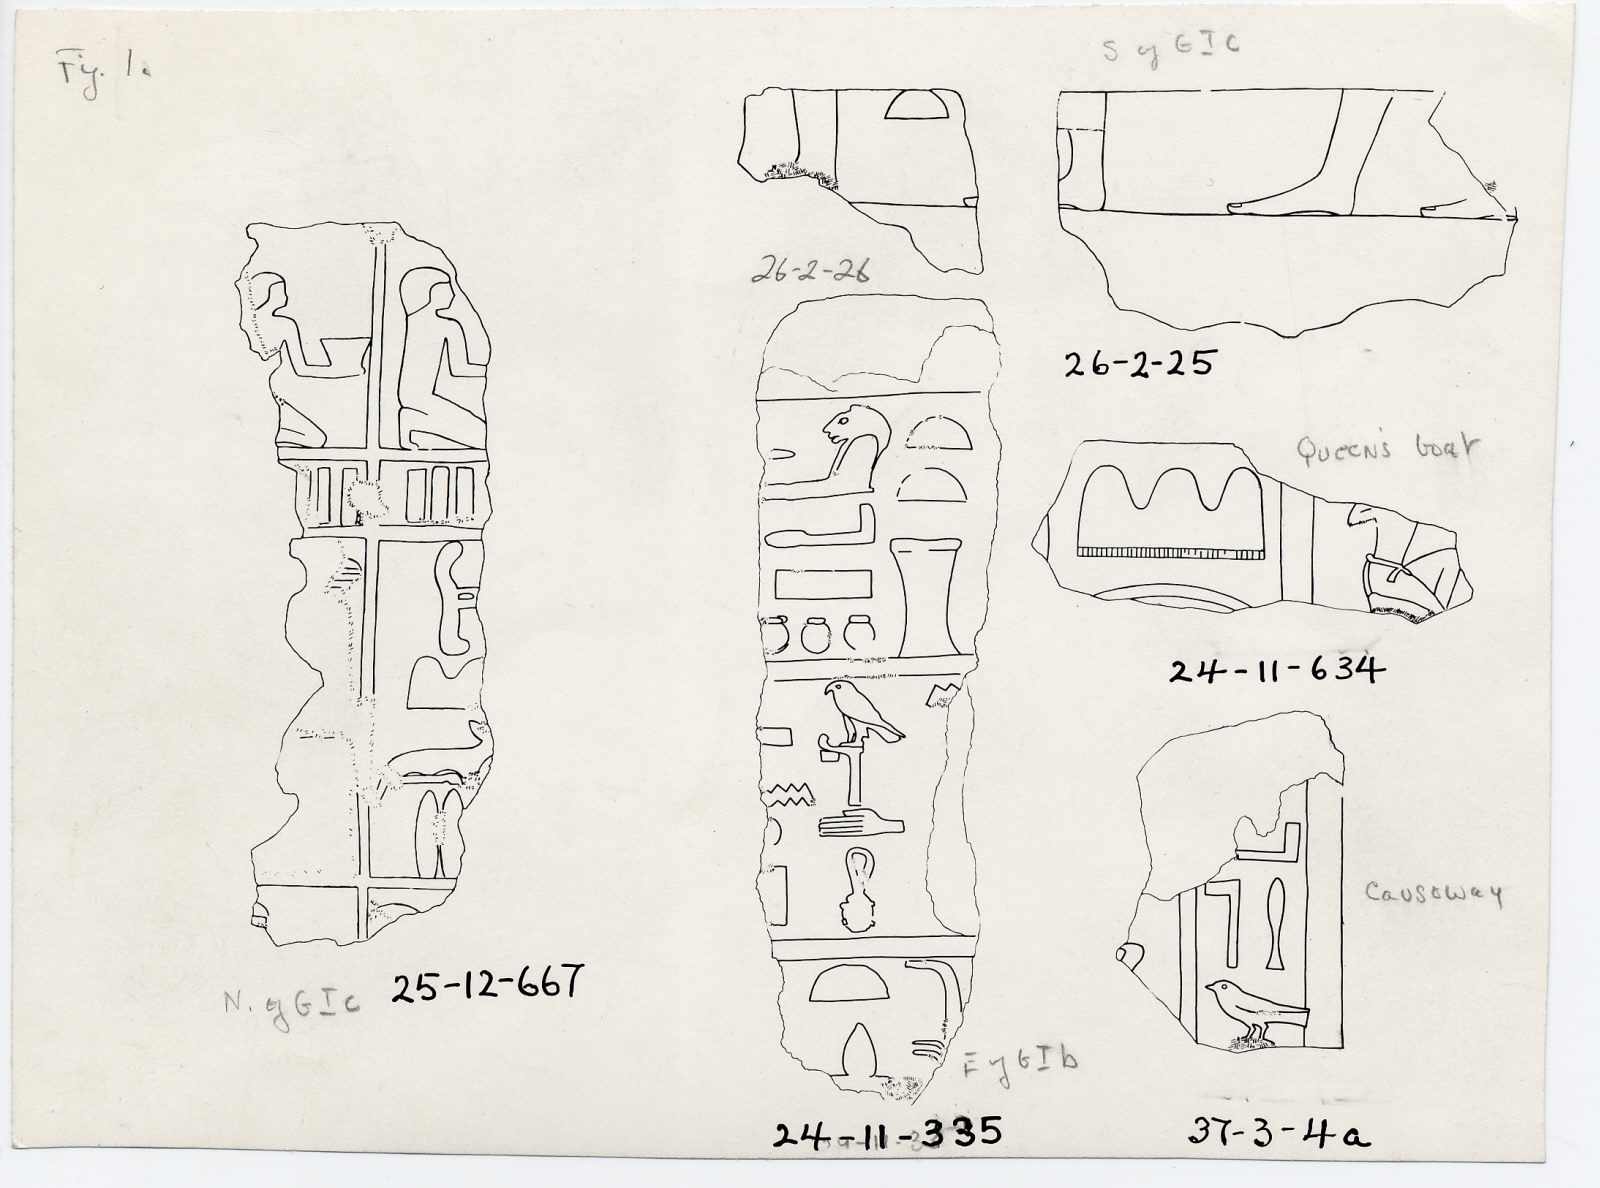 Drawings: Fragments of relief from Avenue G 4, G I-a, G I-a Boat Pit, G I-b, G I-c